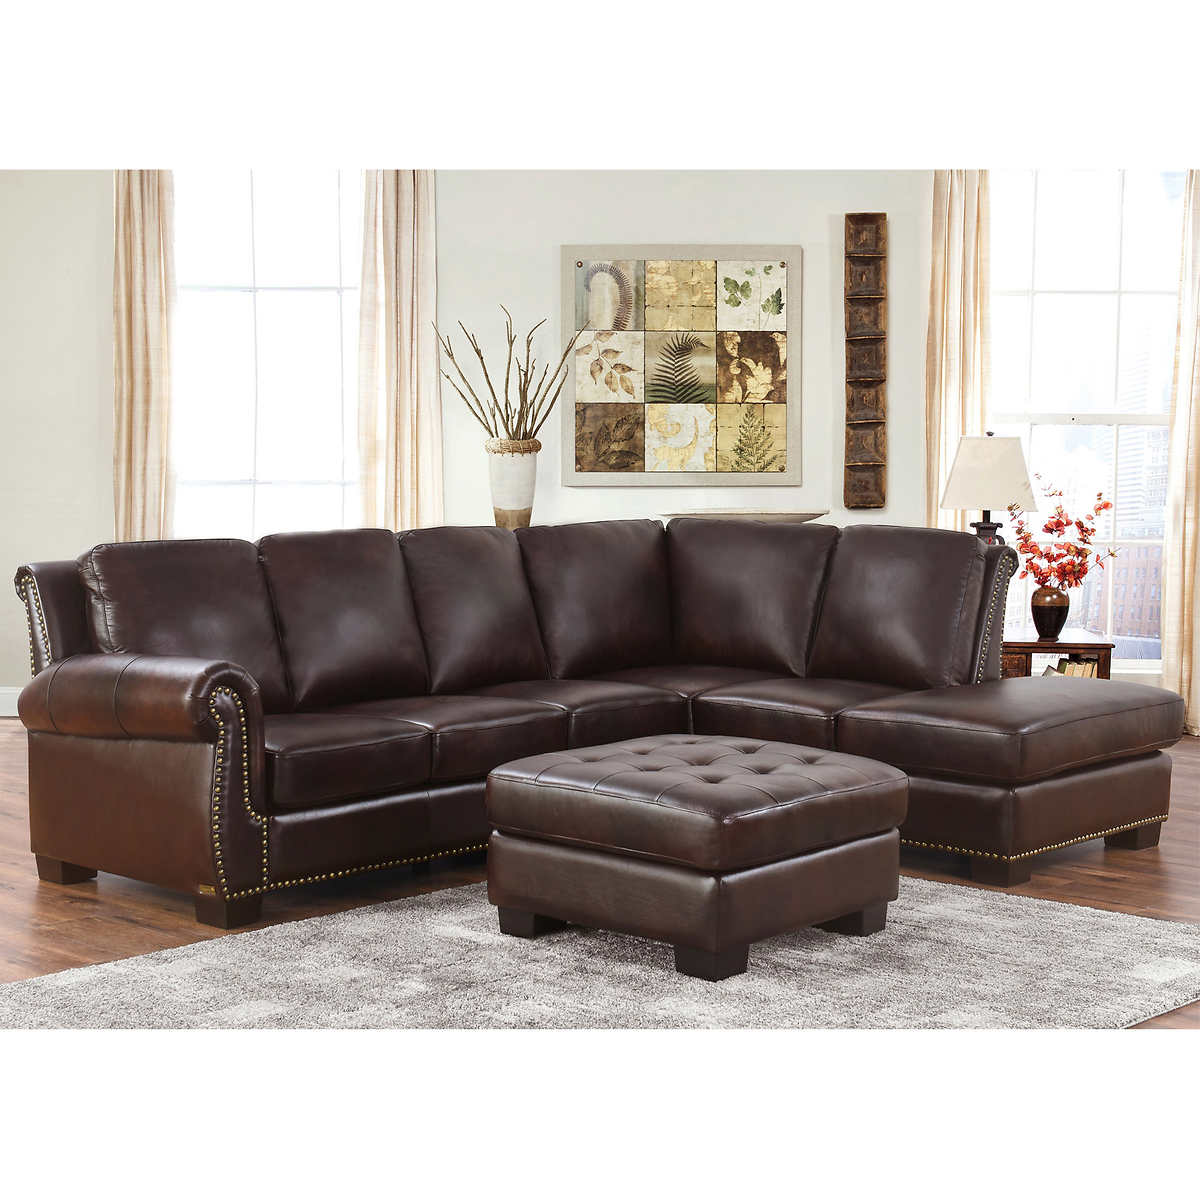 Fabulous Encore Top Grain Leather Sectional And Ottoman Living Room Set Ibusinesslaw Wood Chair Design Ideas Ibusinesslaworg